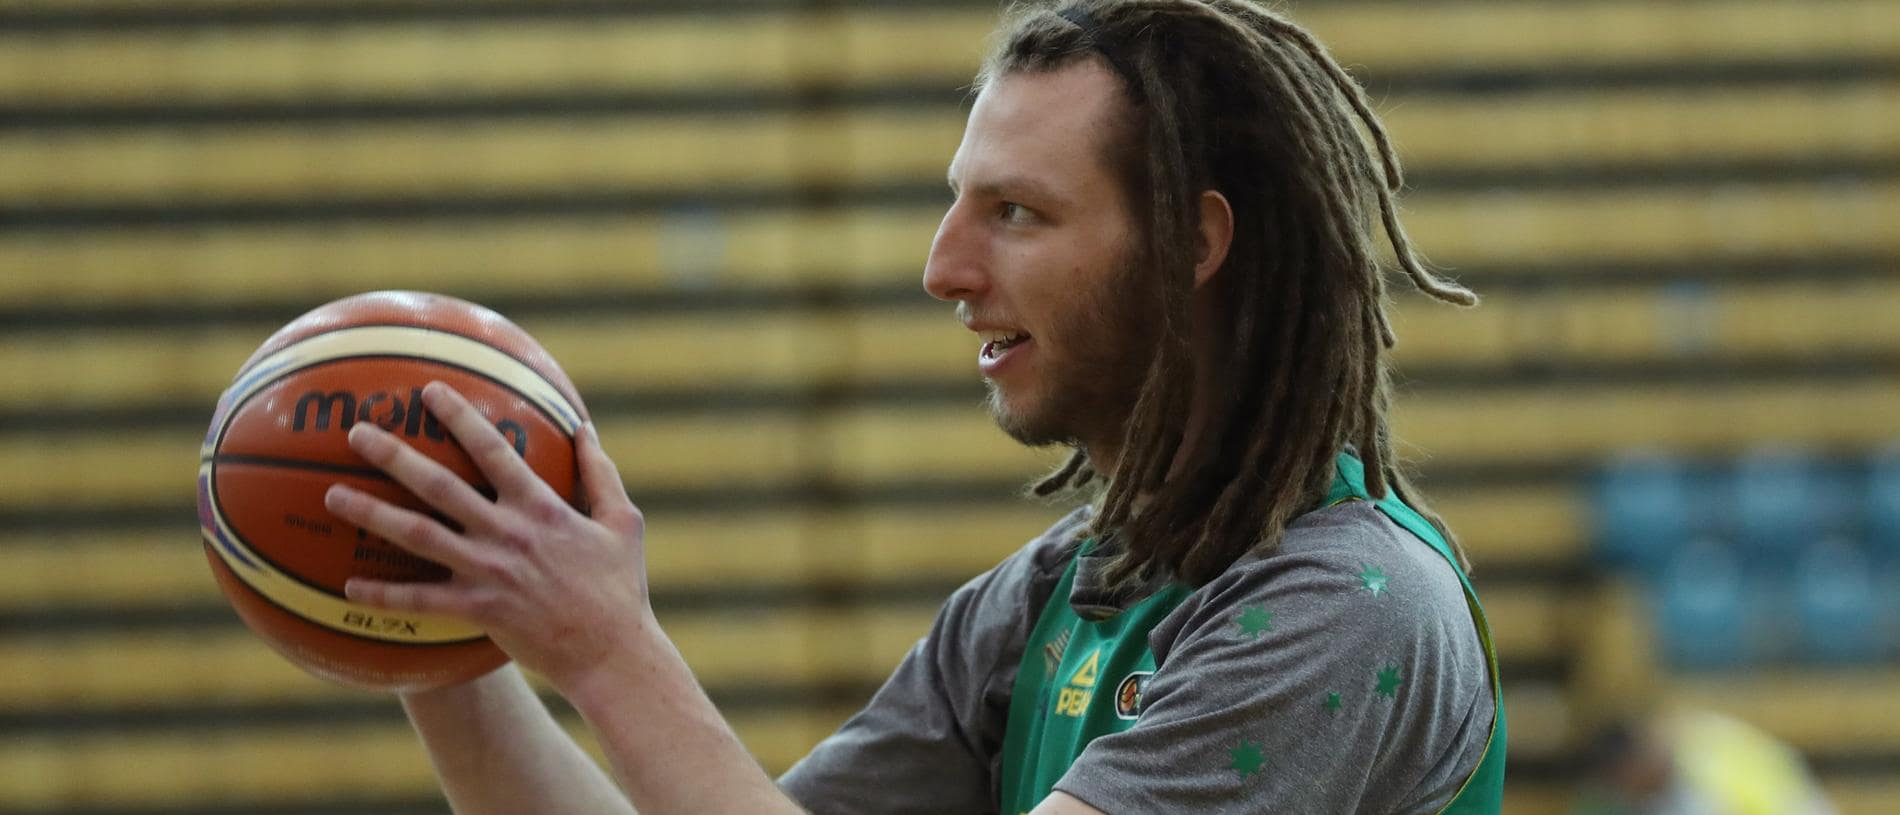 Craig Moller at Australian men's Boomers basketball squad is seen during a training session ahead of the World Cup qualifiers in Melbourne, Wednesday, November 28, 2018. The Boomers will play against Iran on Friday. (AAP Image/David Crosling) NO ARCHIVING